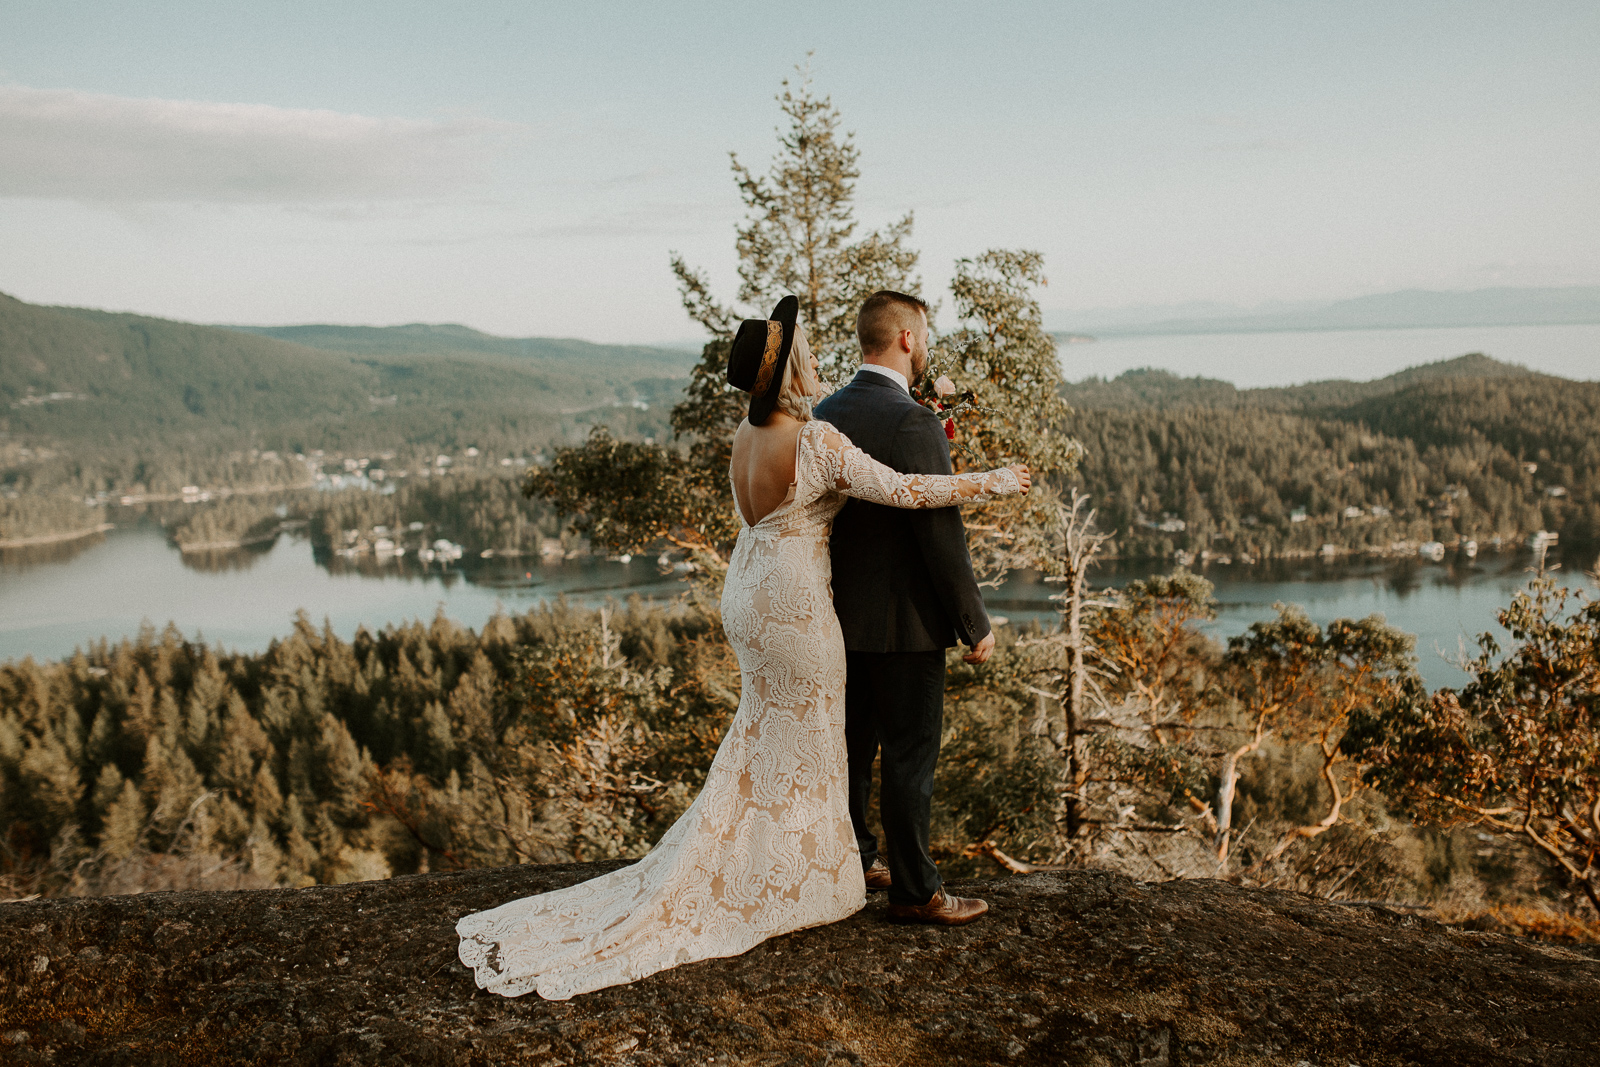 Luke Lambertson Photo_BritishColumbia_Canada_AdventurousCouple_Elopement_IMG-7886.jpg